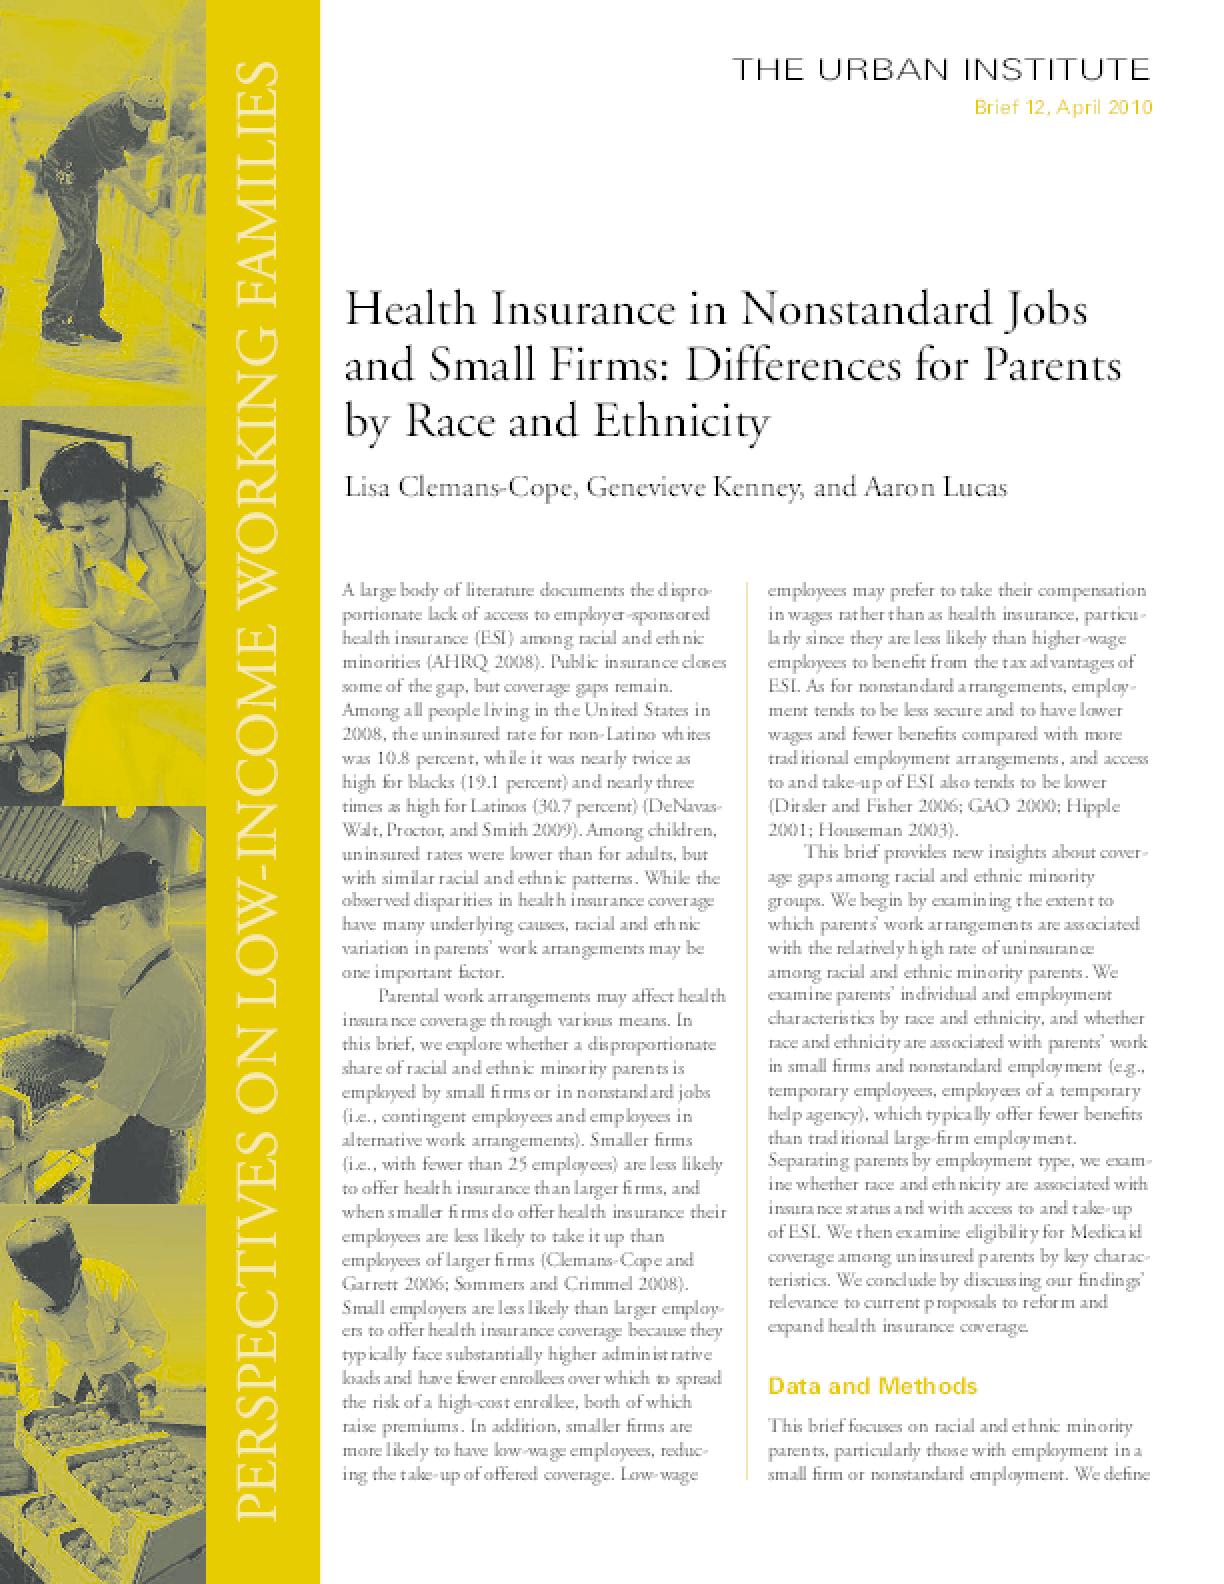 Health Insurance in Nonstandard Jobs and Small Firms: Differences for Parents by Race and Ethnicity